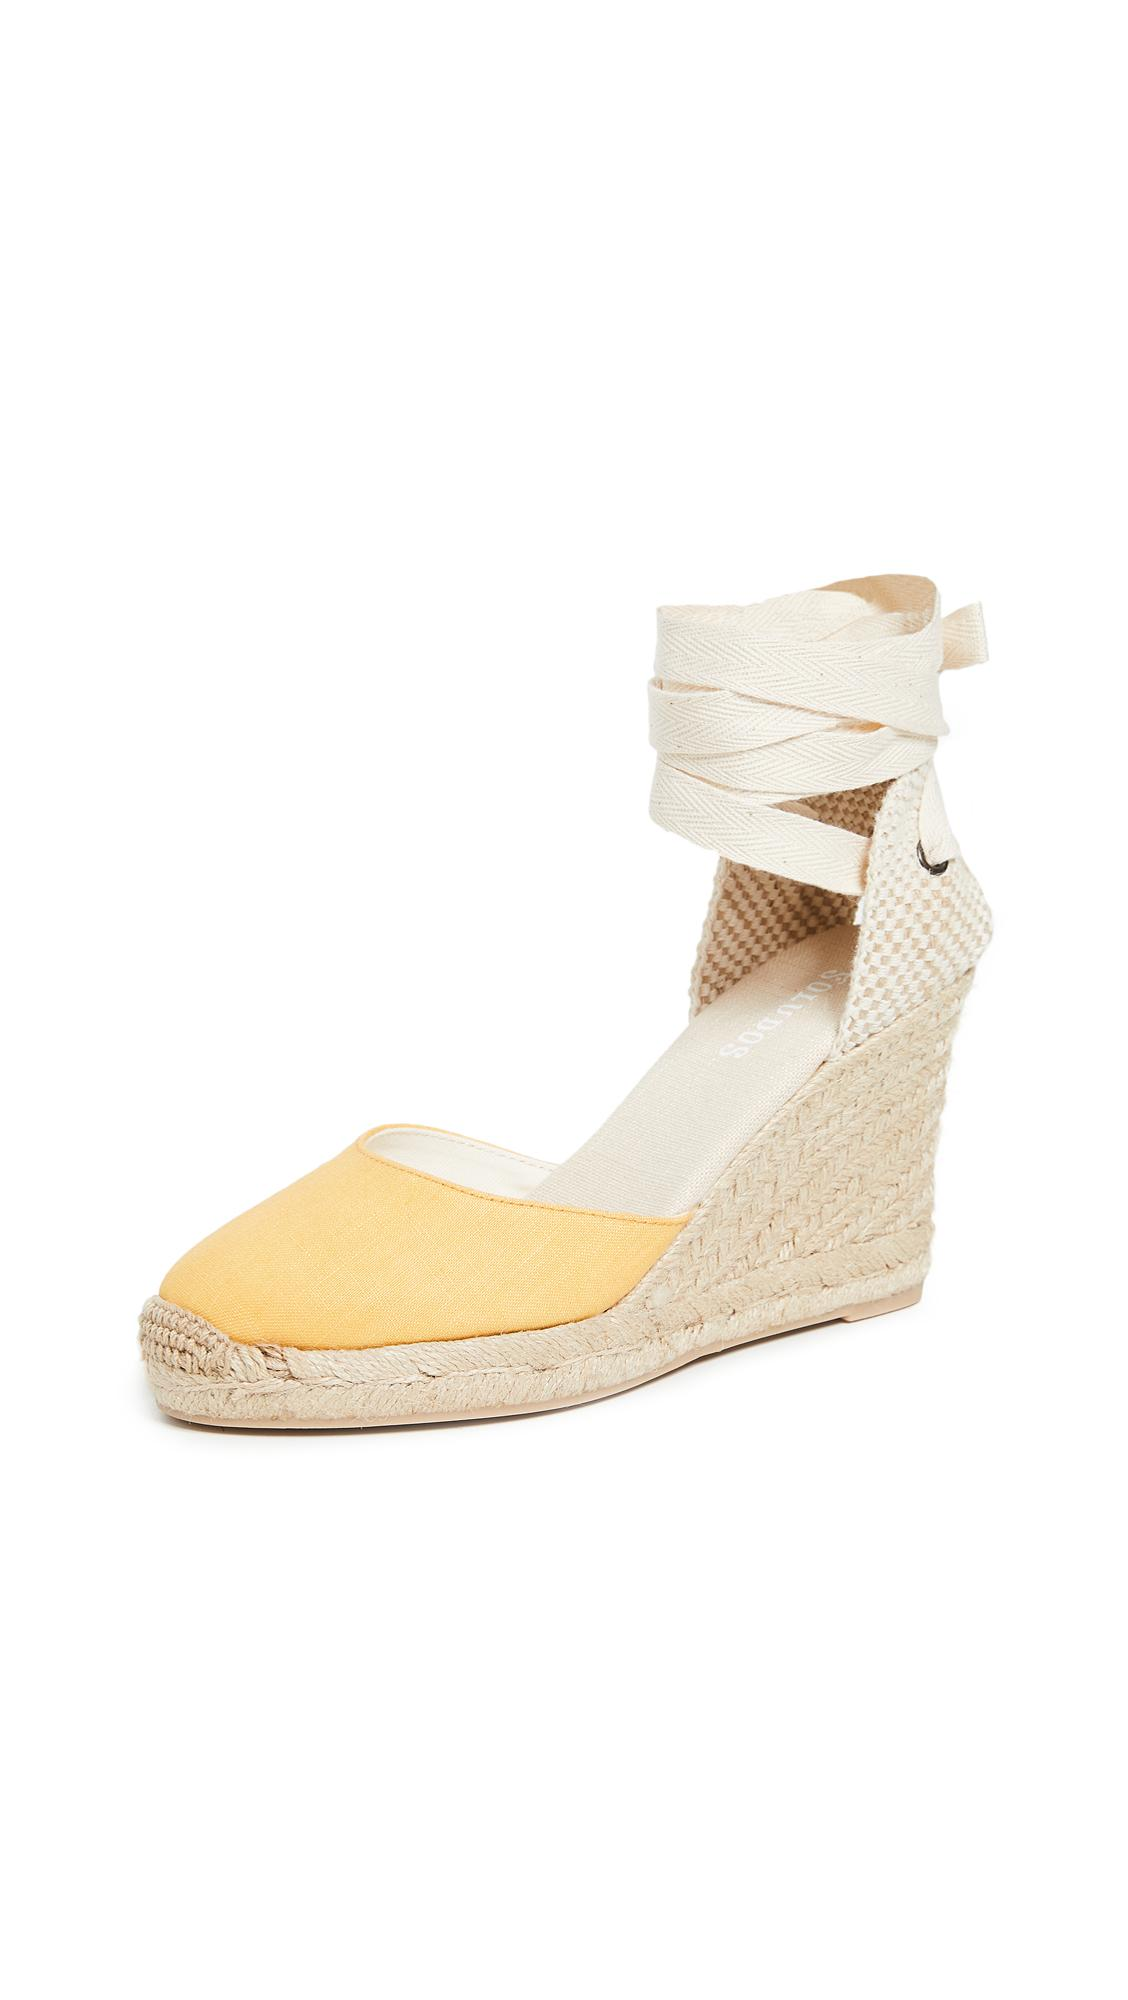 92a6b2e2bf2 Tall Wedge Espadrilles in Marigold